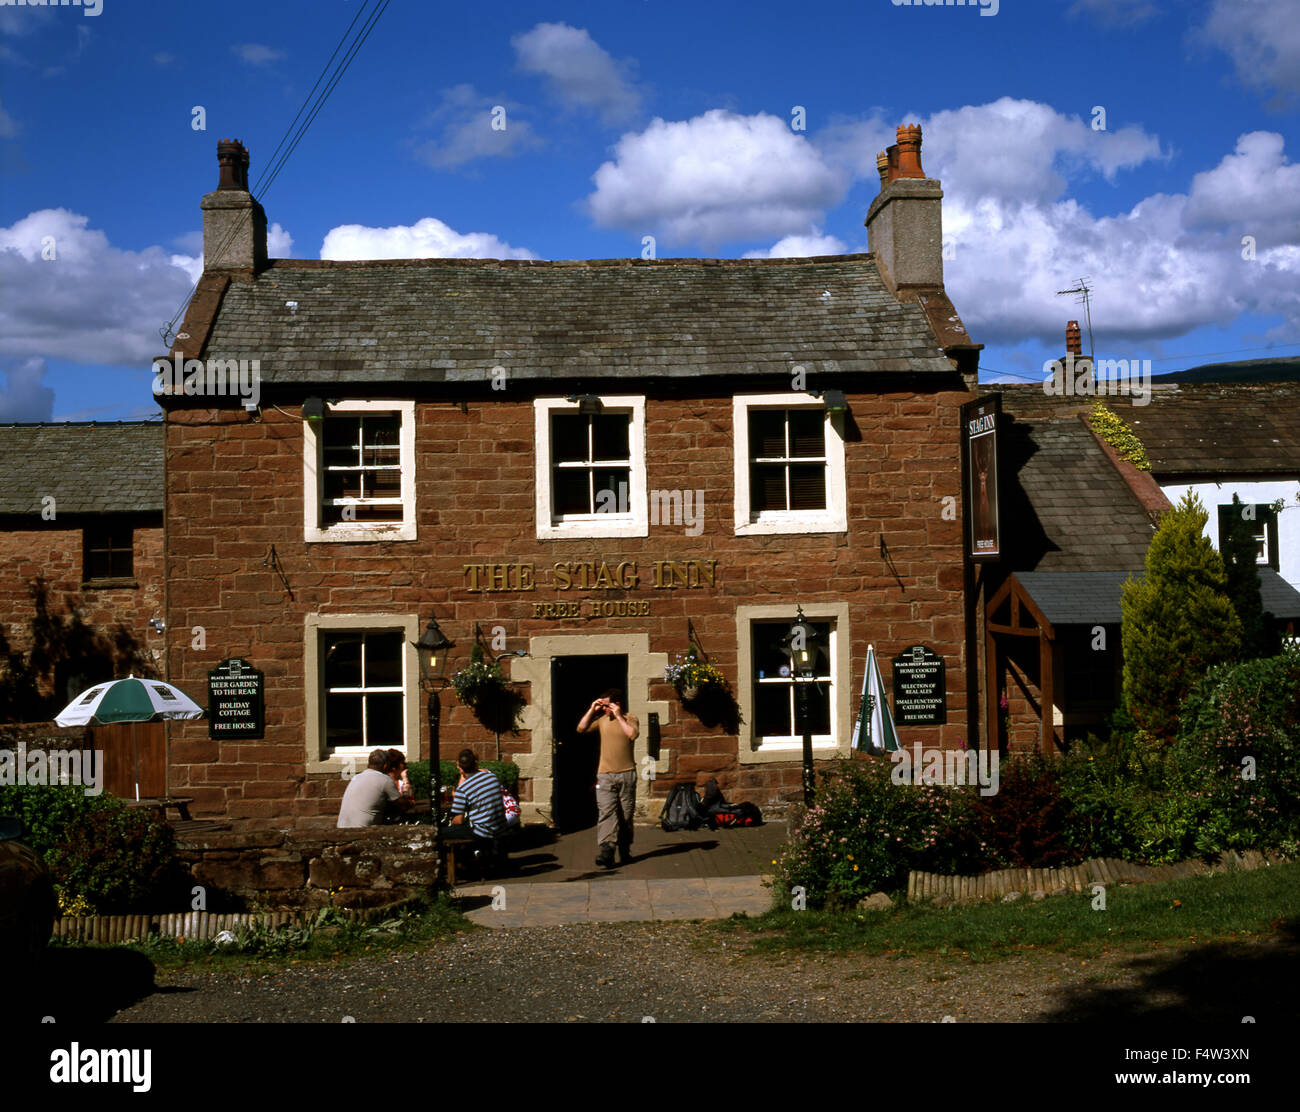 The Stag Inn, Dufton, Cumbria - Stock Image